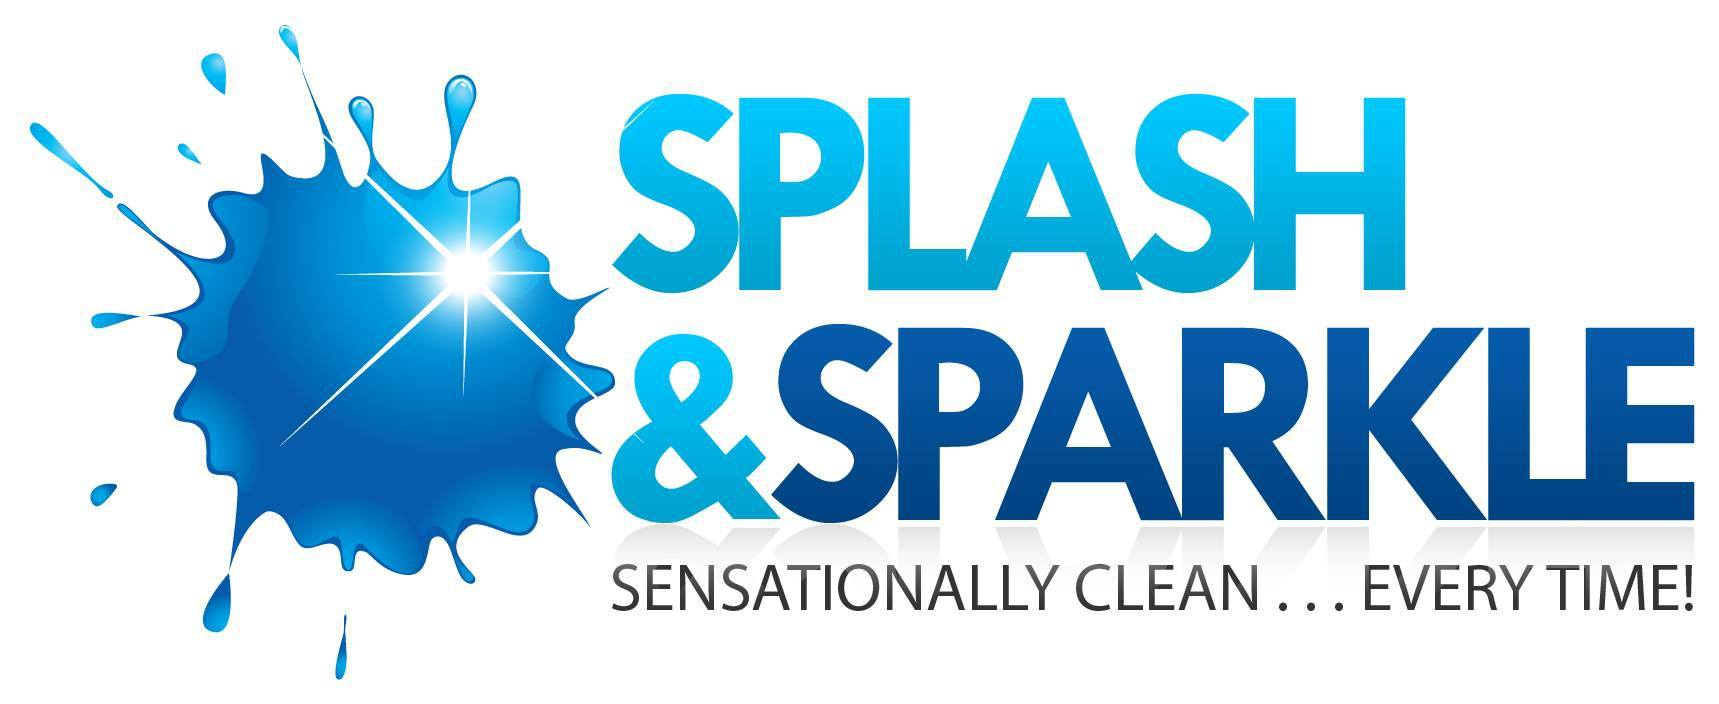 Buckinghamshire External Cleaning Company Splash and Sparkle Invest In Dedicated Driveway Cleaning Van